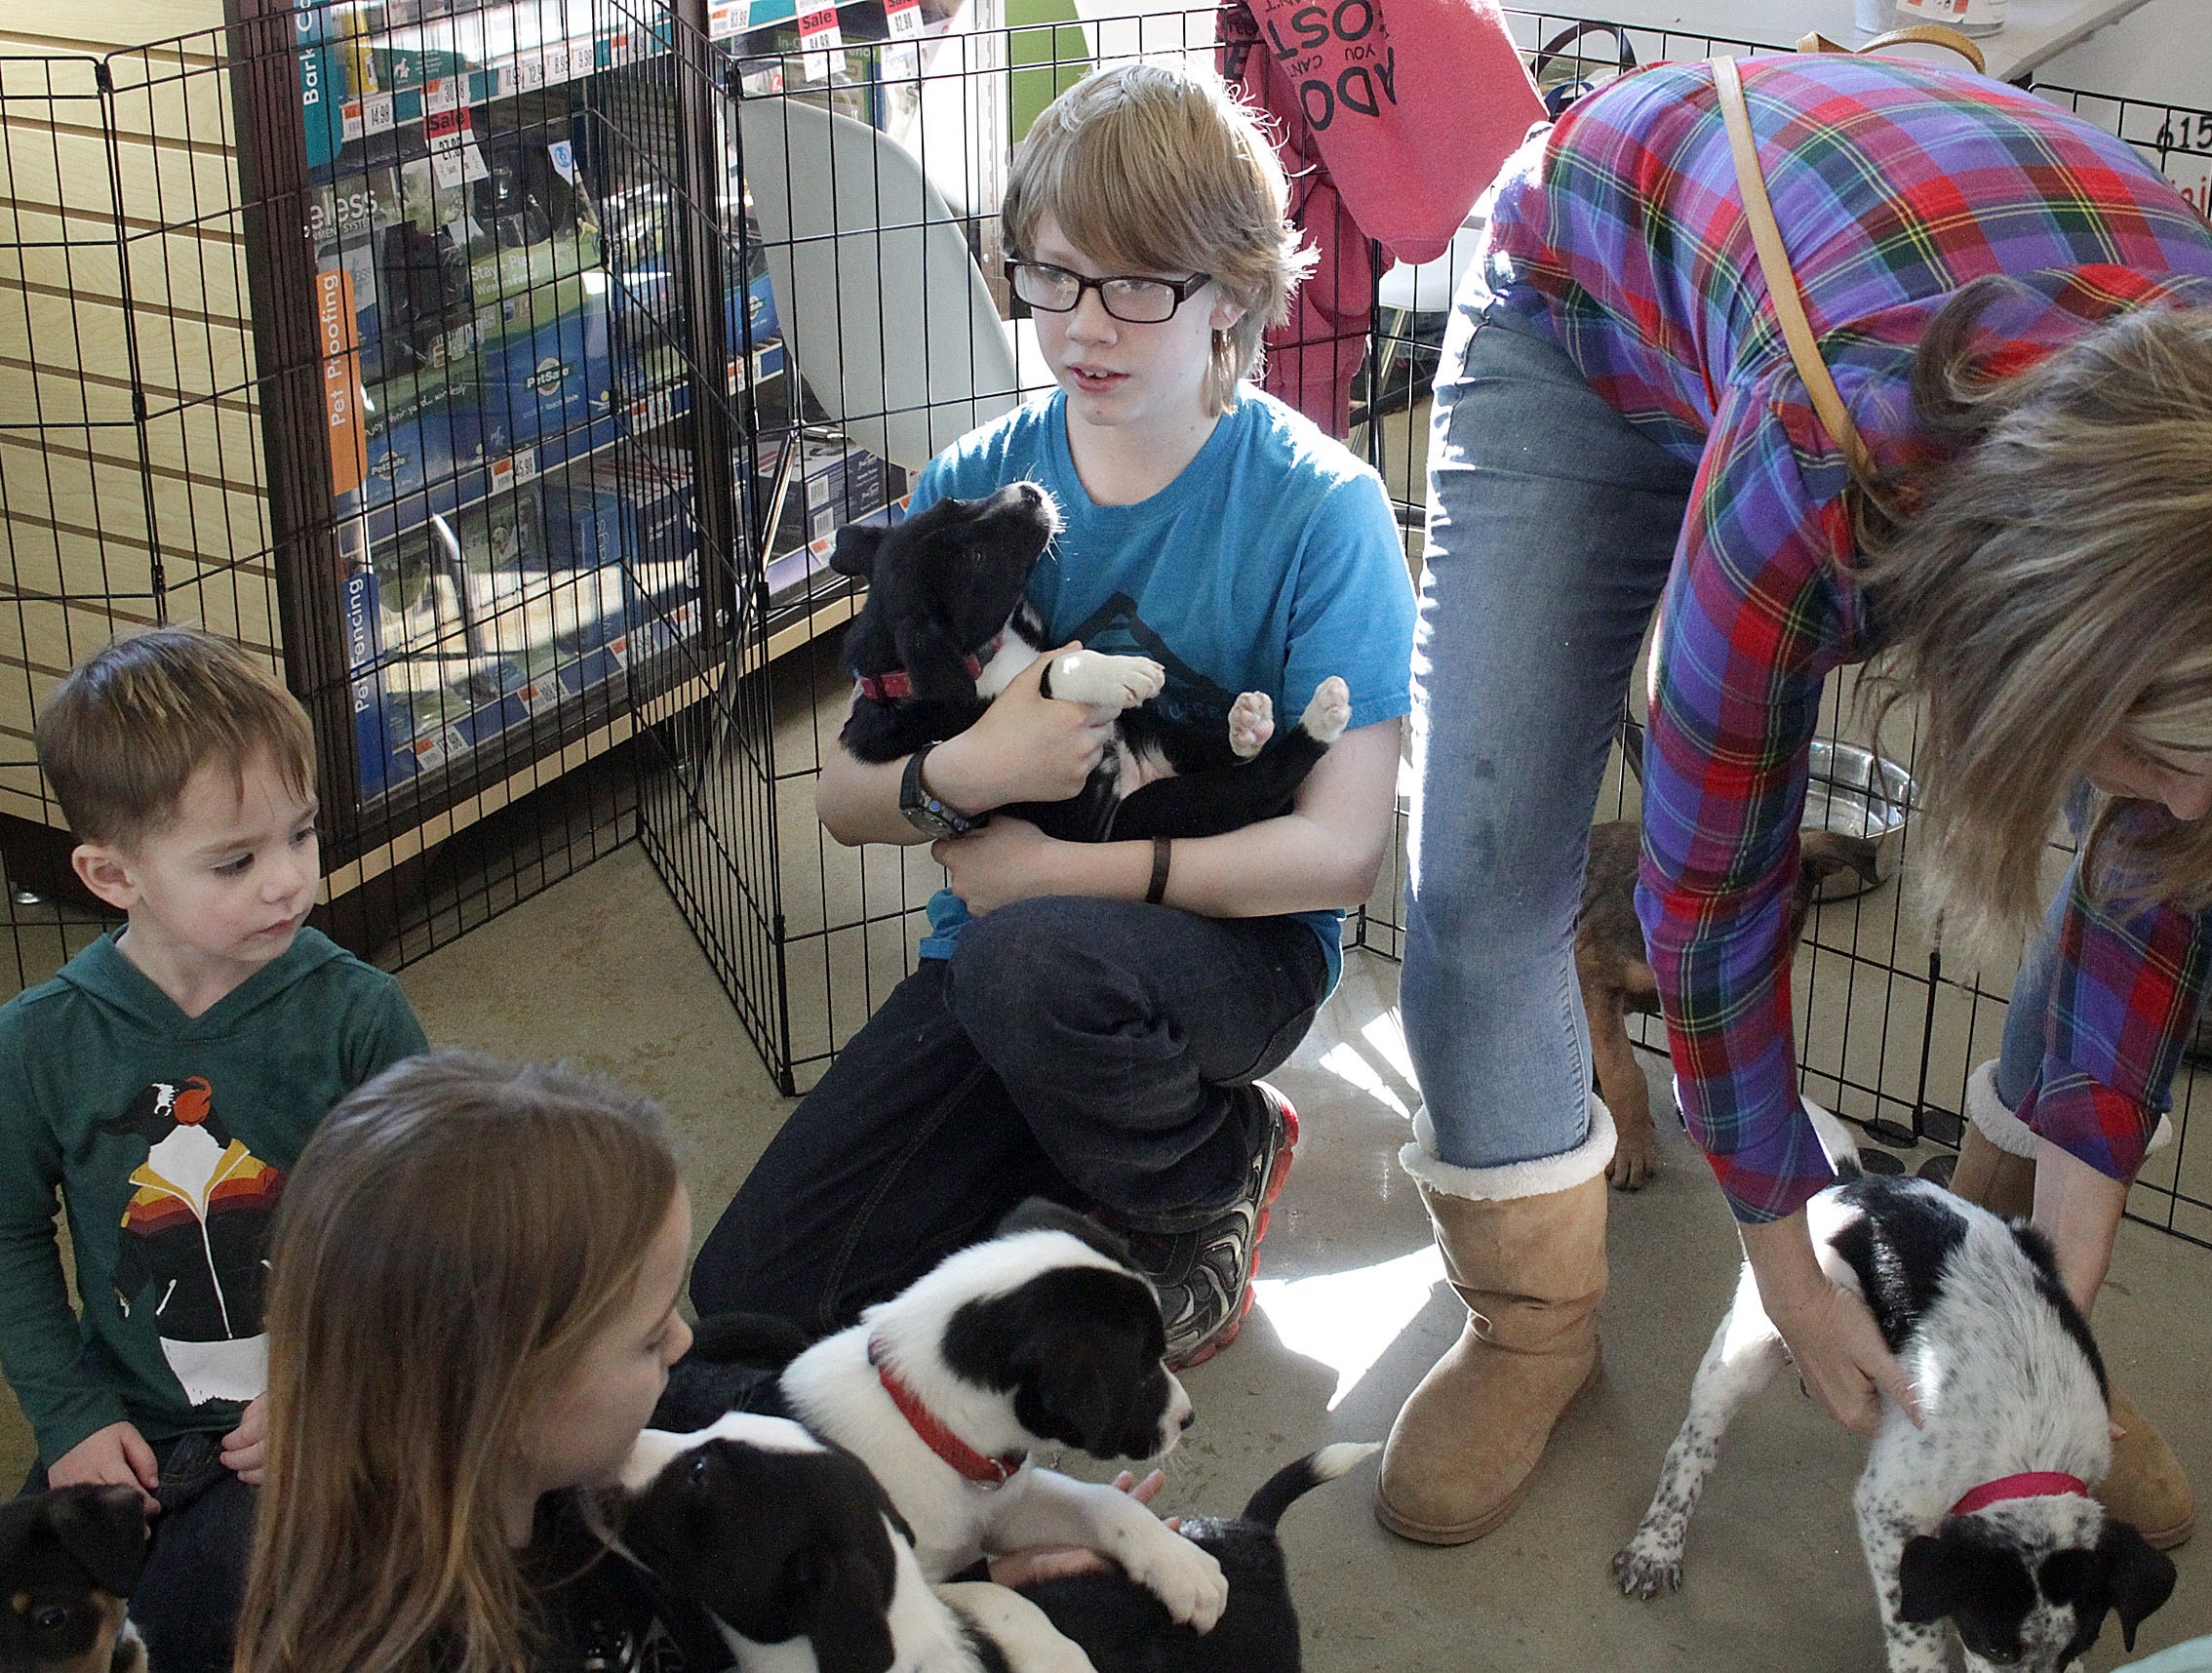 Kids play with puppies at Jojo's Doghouse adoption event at Pet Supplies Plus in Hendersonville, TN on Saturday, January 5, 2019.